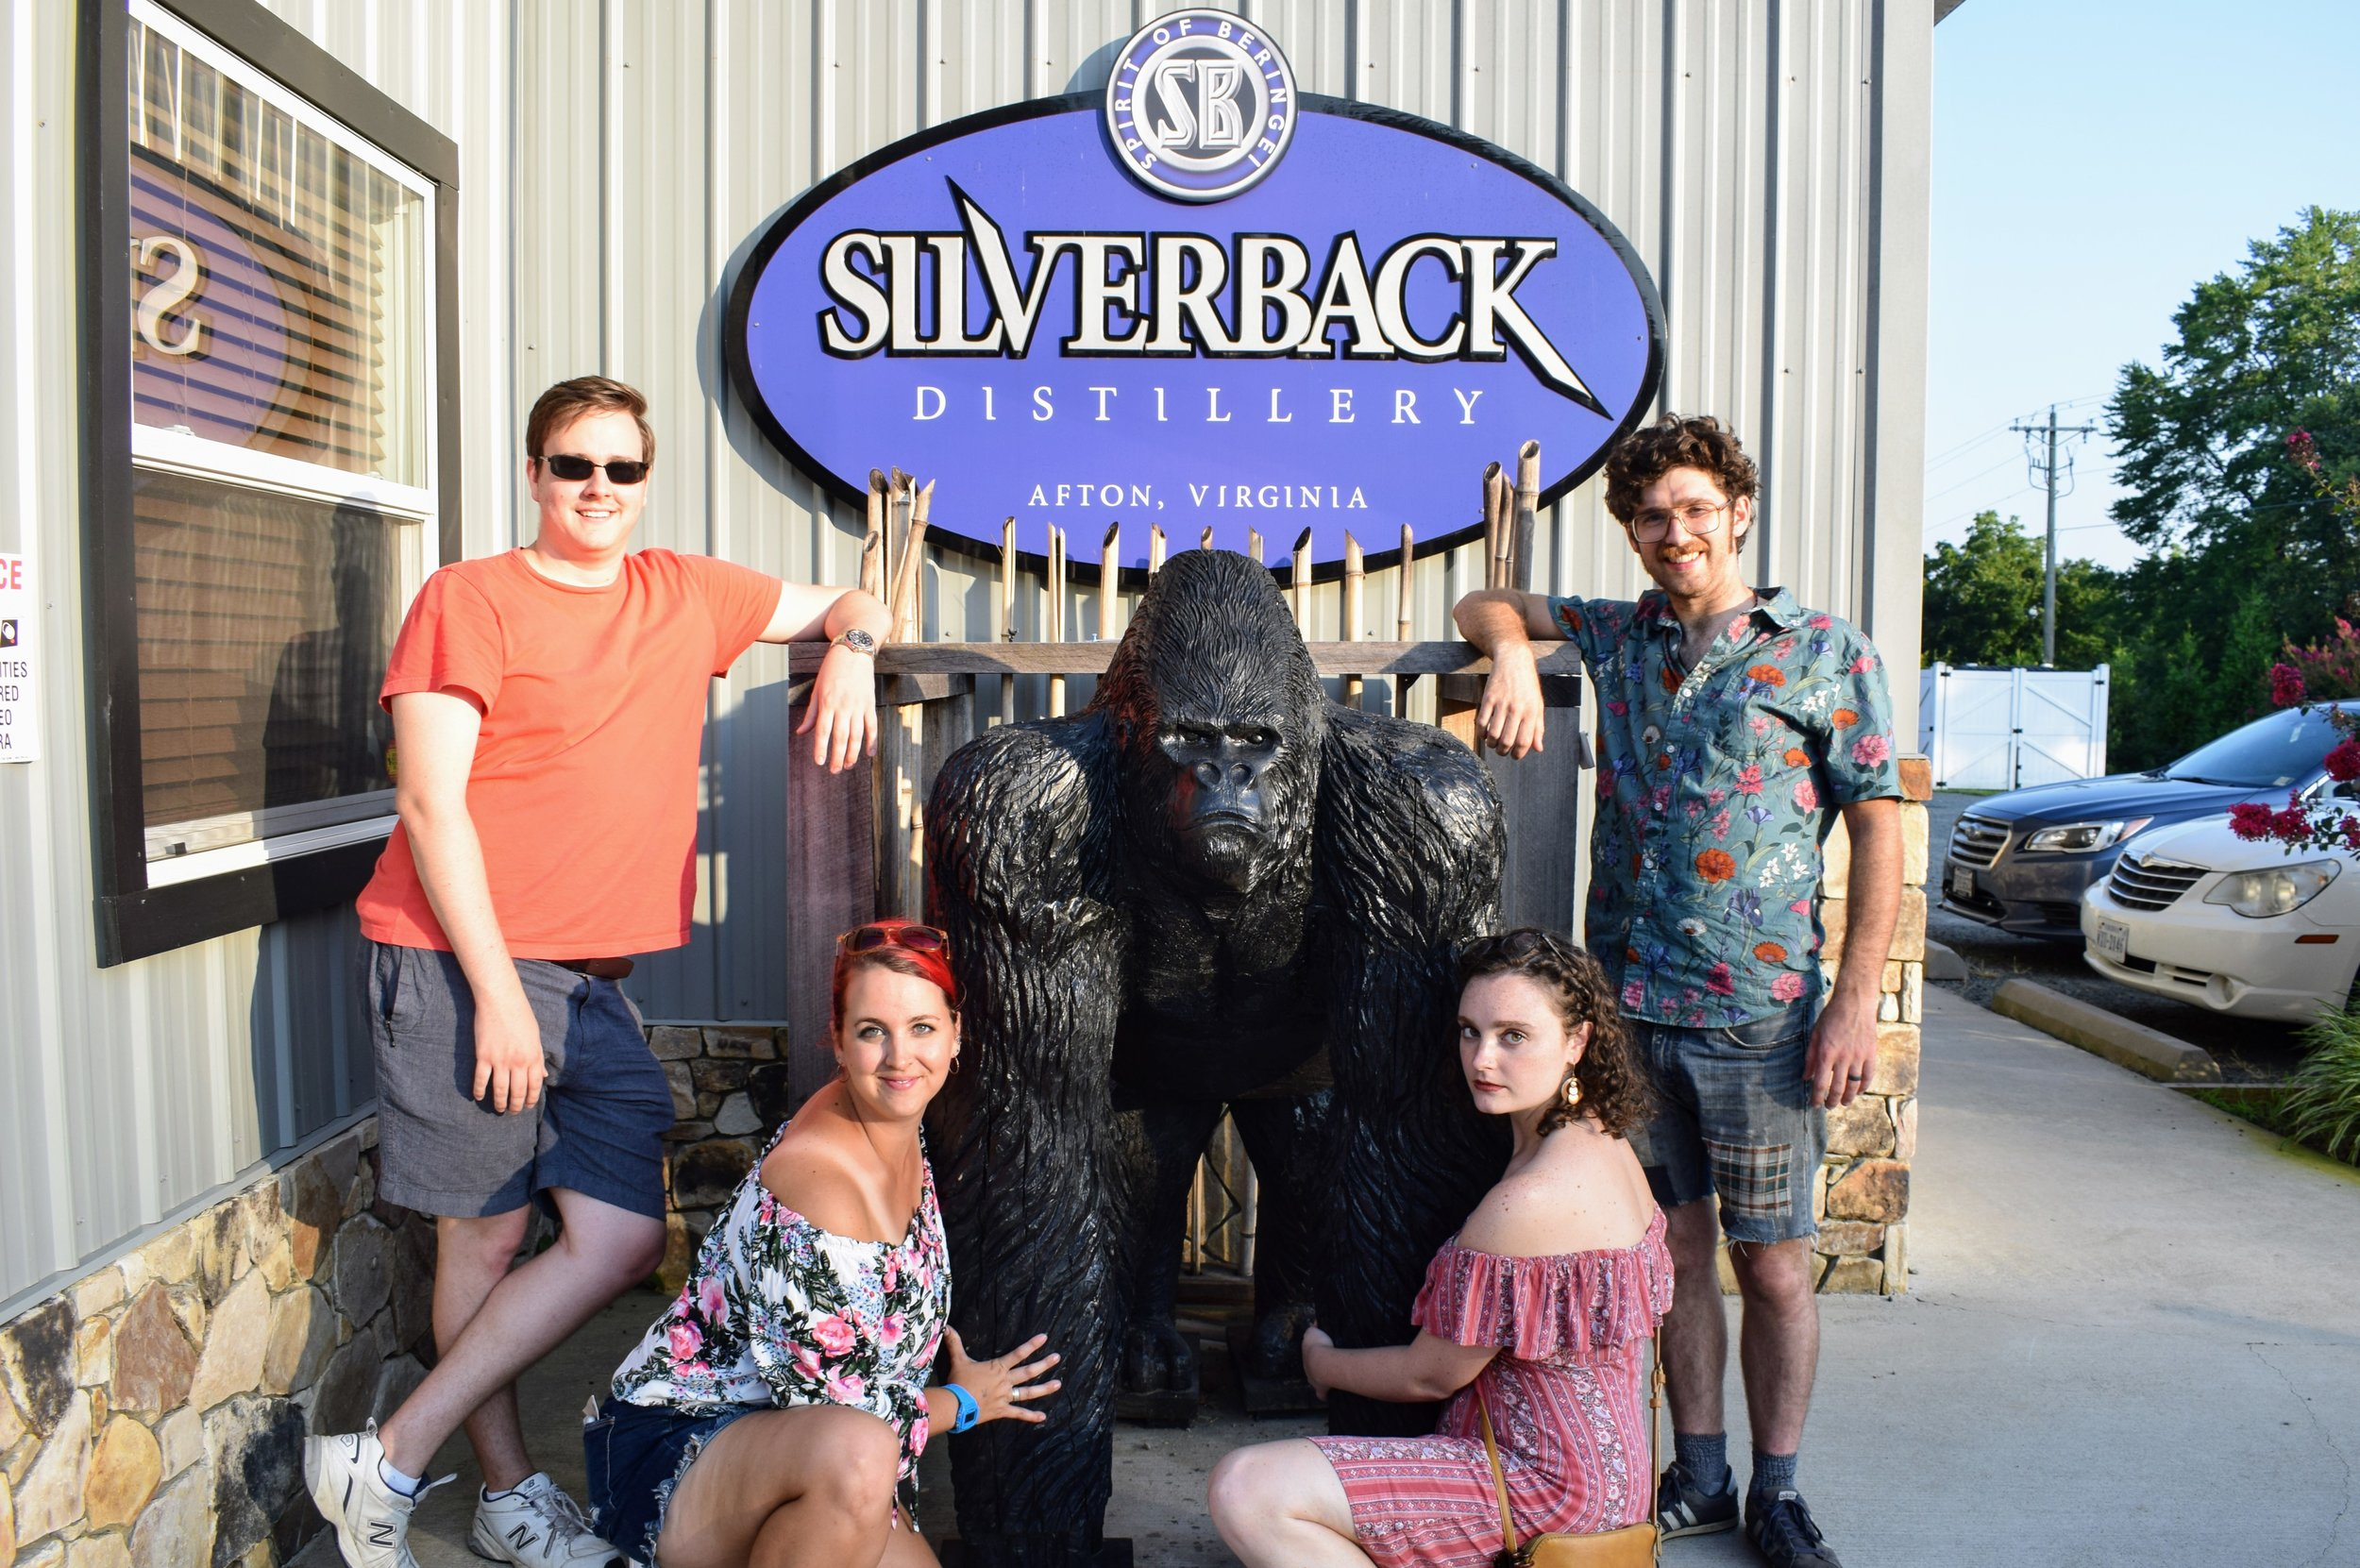 Me, Emmett, CJ, and my brother Dylan couldn't resist taking a picture with the Silverback gorilla. Yes, I know that my tan lines are dramatic.